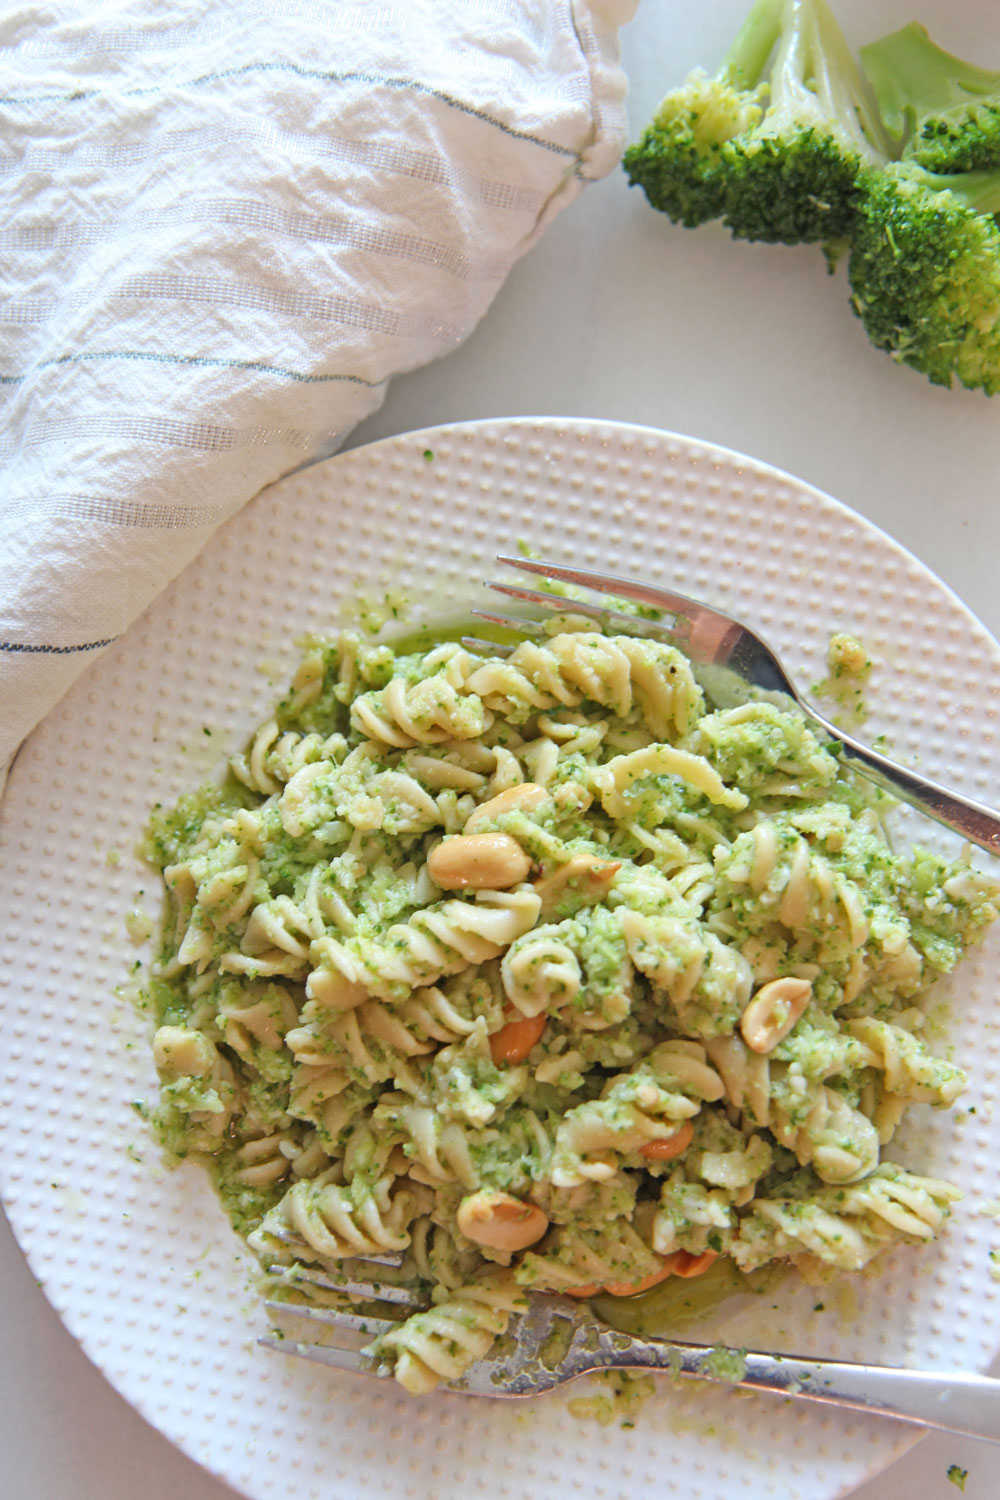 Broccoli Pesto Pasta Recipe. Grab broccoli, arugula, Parmesan, peanuts, and extra virgin olive oil. The secret ingredient is red wine vinegar to brighten it up. This is a 10 minute dinner recipe. Happy Cooking! www.ChopHappy.com #broccoli #pastarecipe